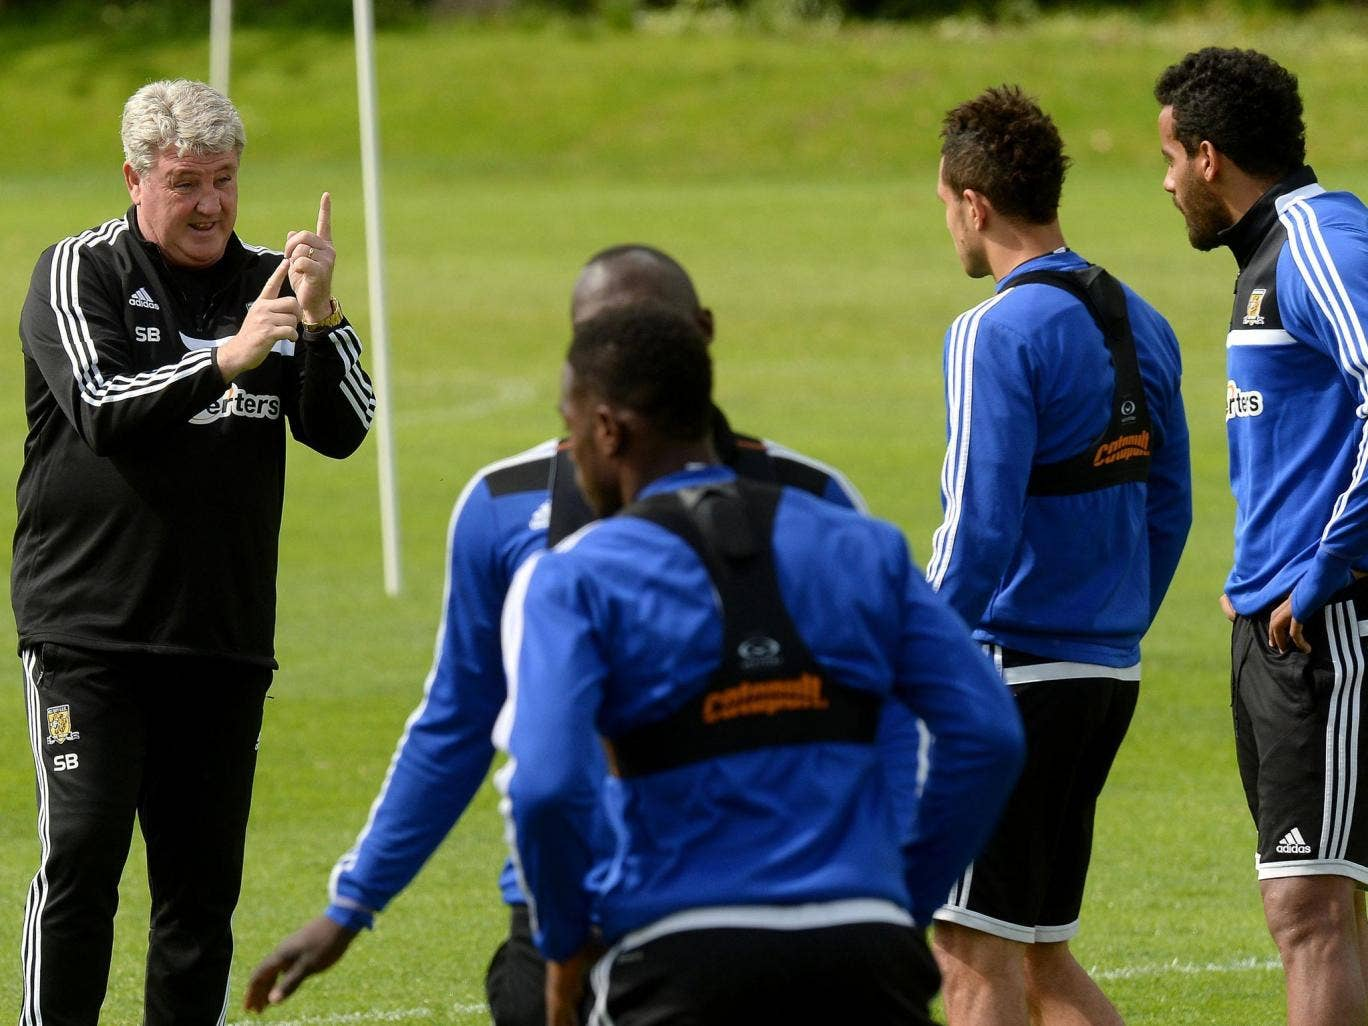 Steve Bruce discusses tactics with his players during a training session this week